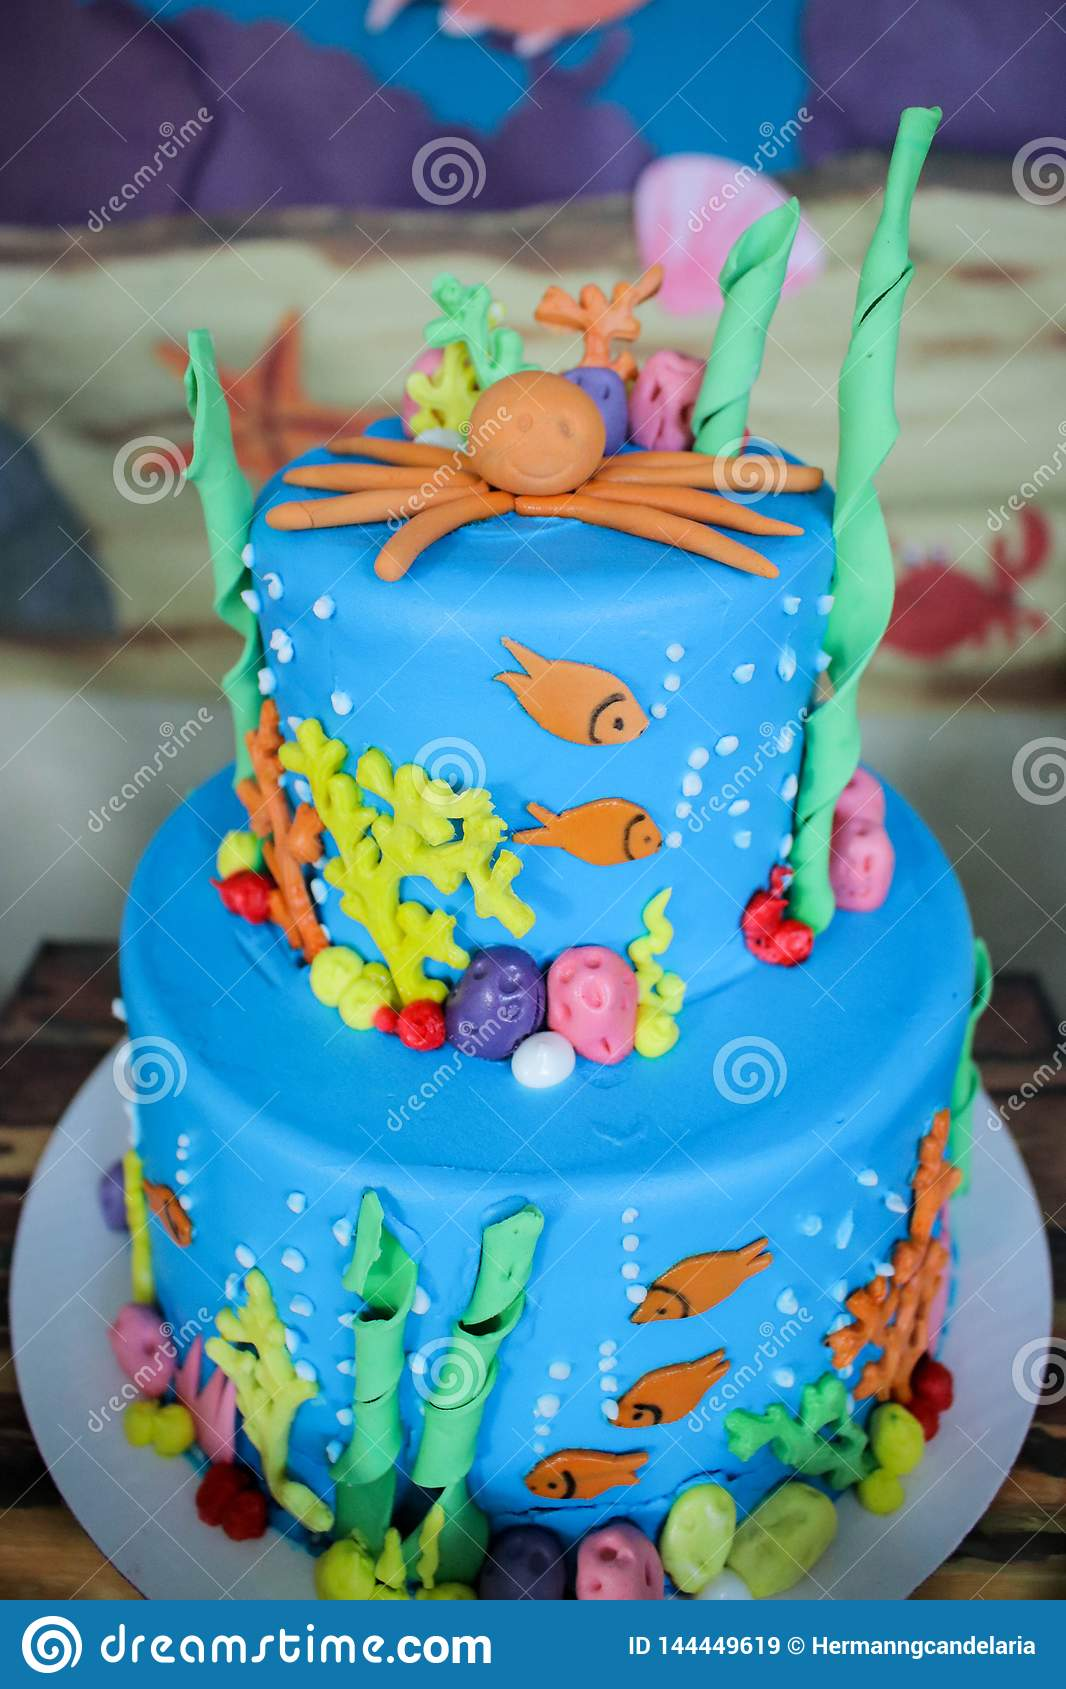 Admirable Sea Creature Theme Cakes For Children Party Stock Image Image Of Funny Birthday Cards Online Alyptdamsfinfo